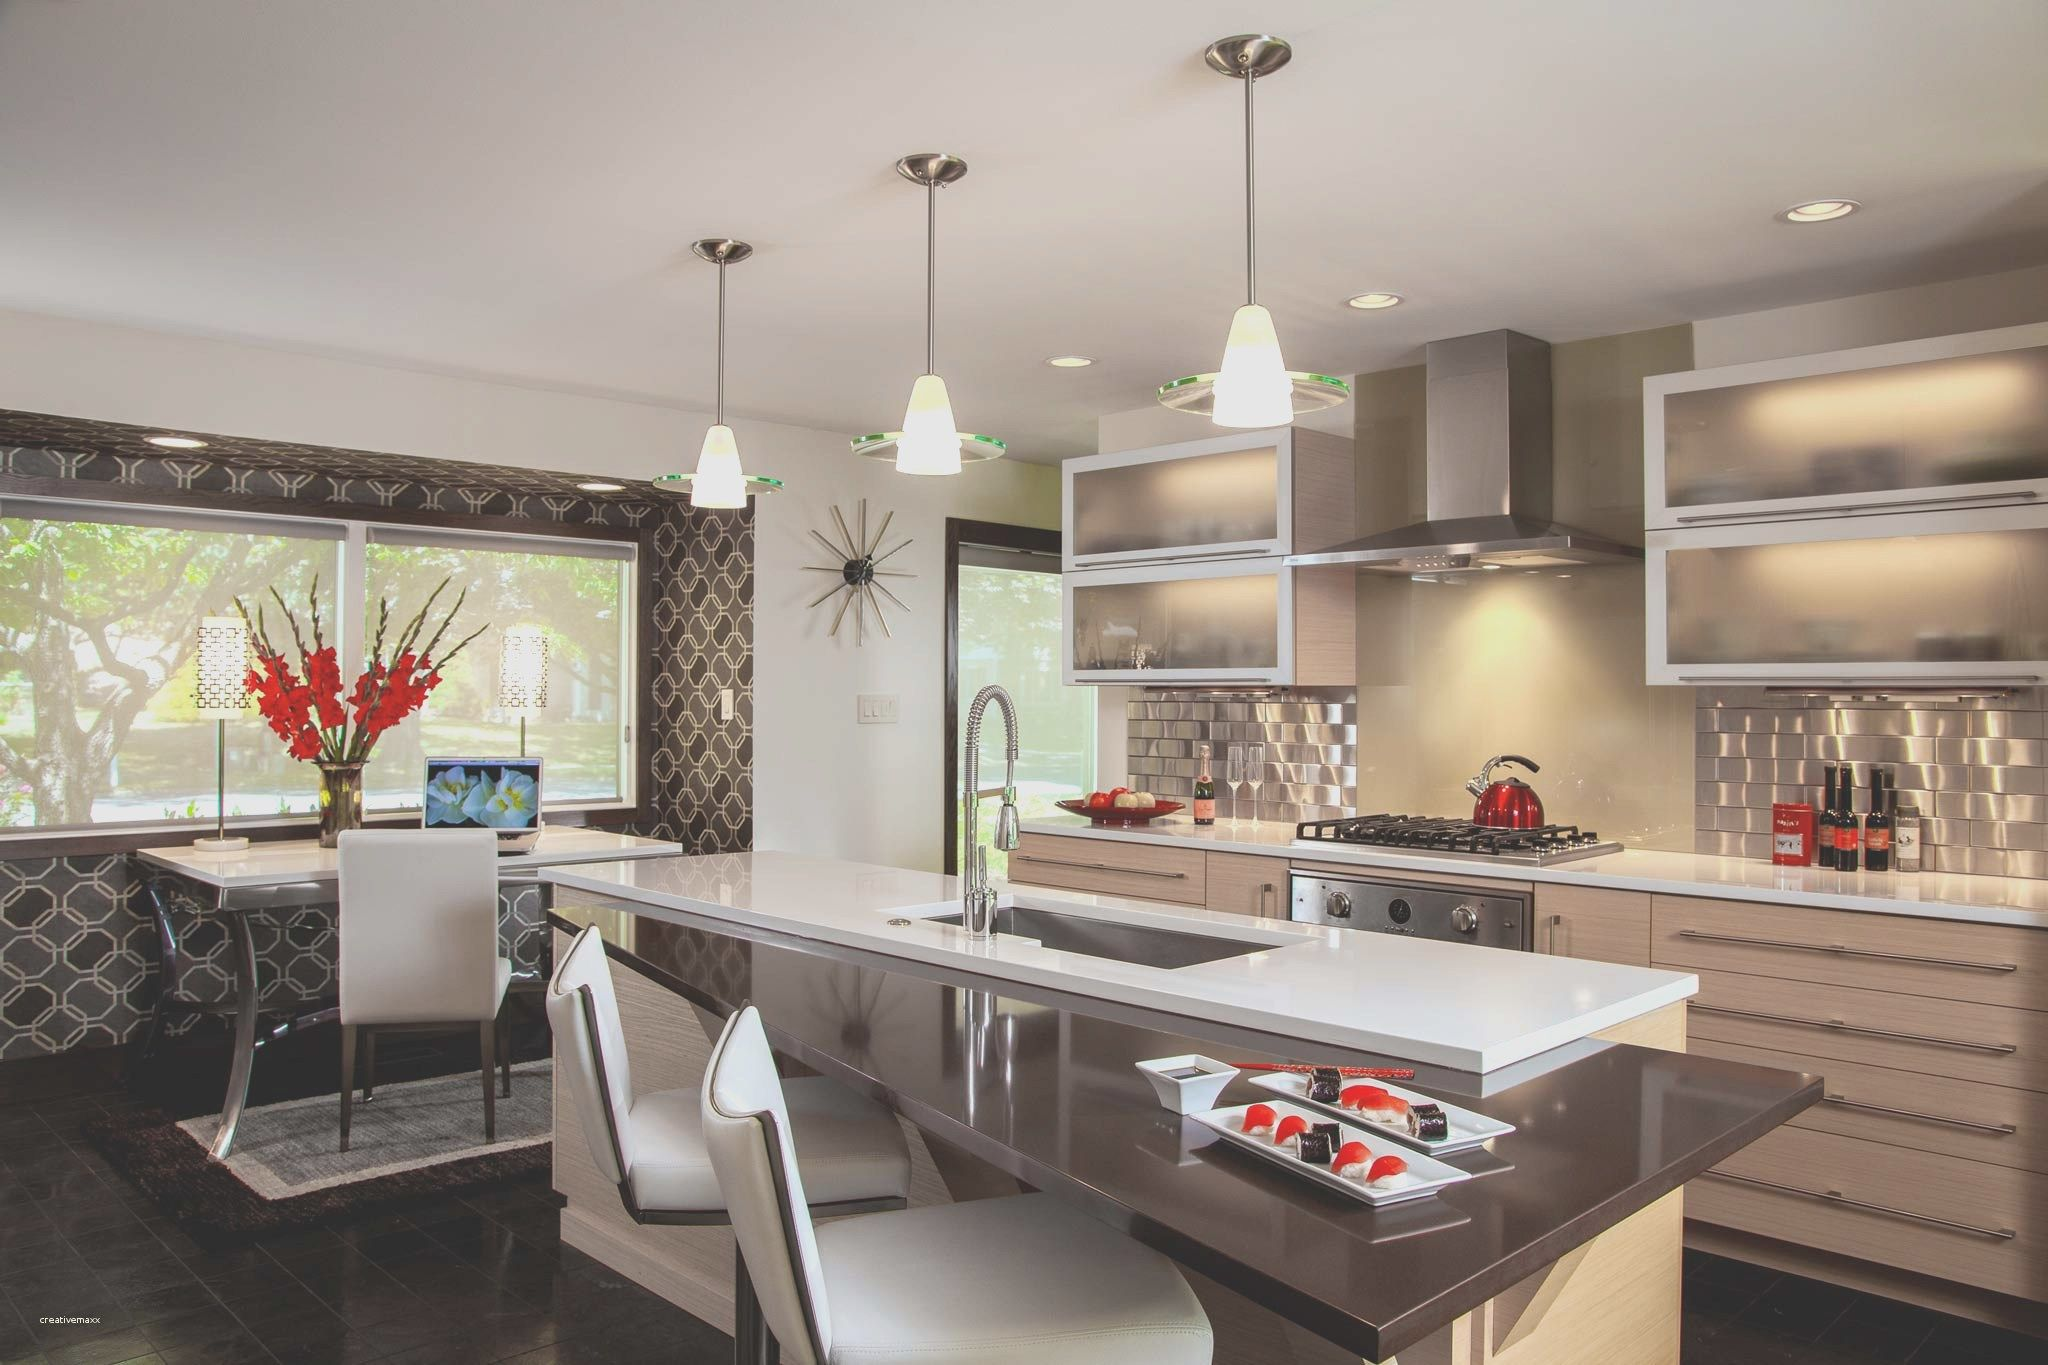 Lovely Kitchen Remodel Ideas in 23 Example Photos | Kitchens